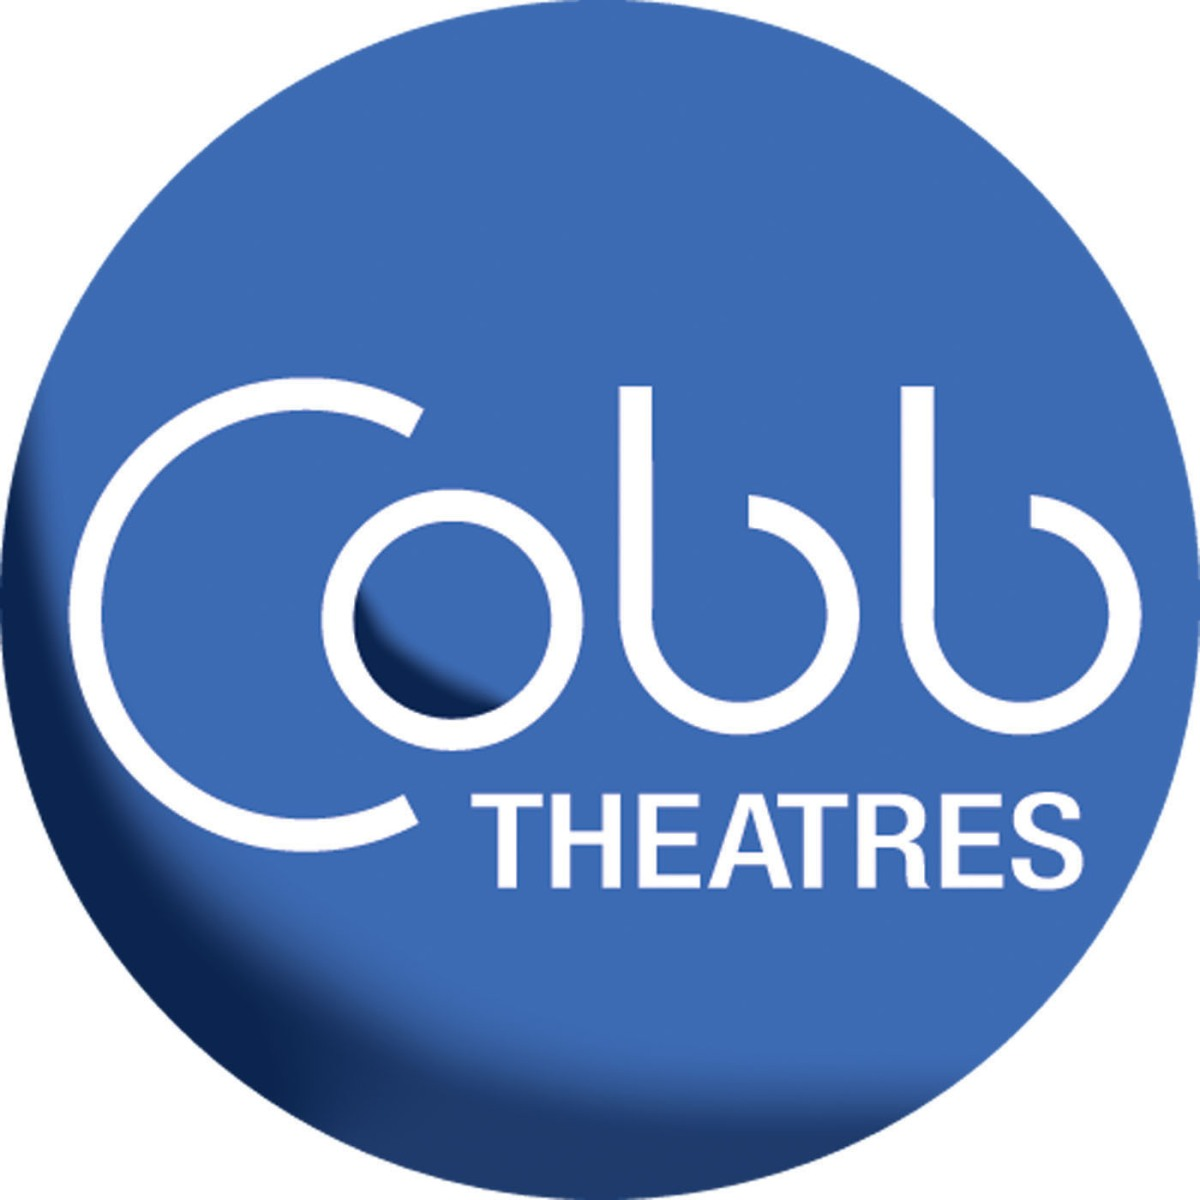 Cobb theatres wants you to be the judge the hotspotorlando - Movie theater palm beach gardens ...